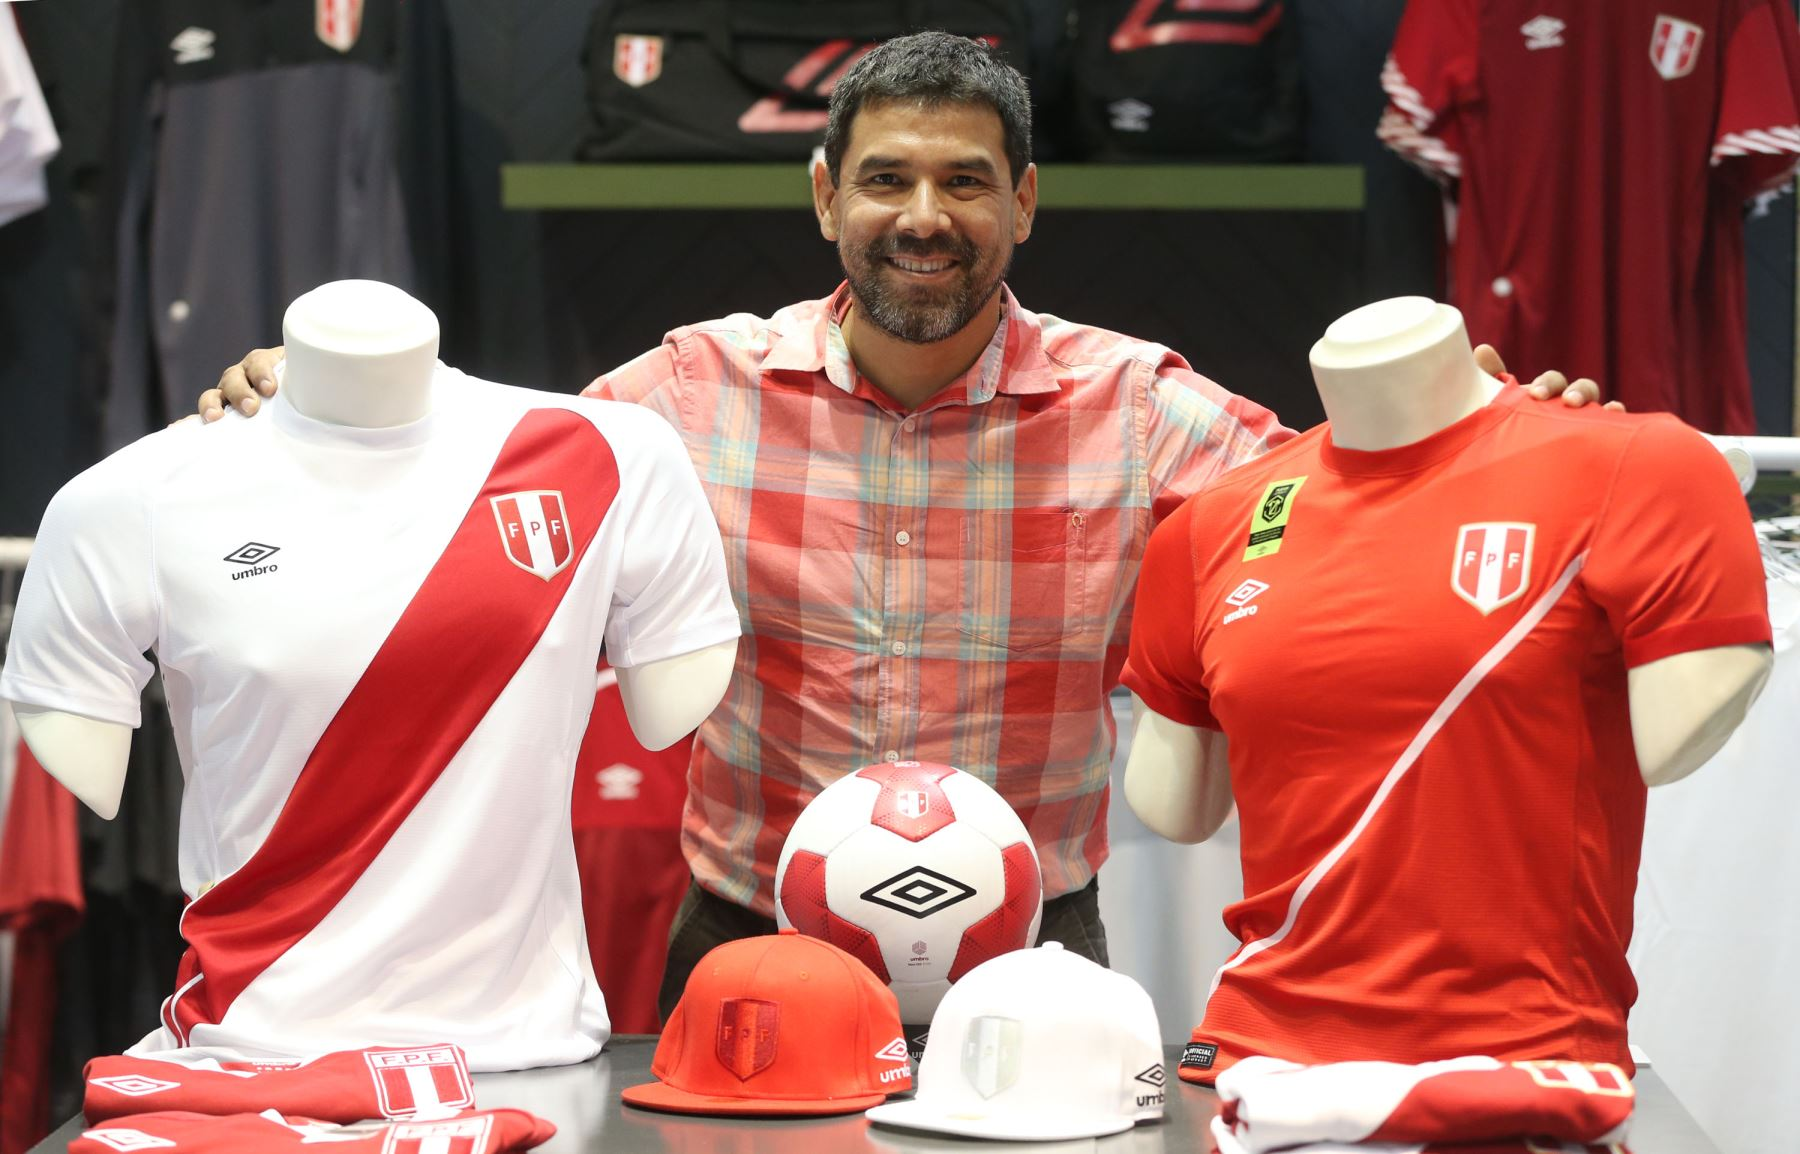 size 40 041c2 25d6d Sales of Peru soccer jerseys up 100% due to national squad ...